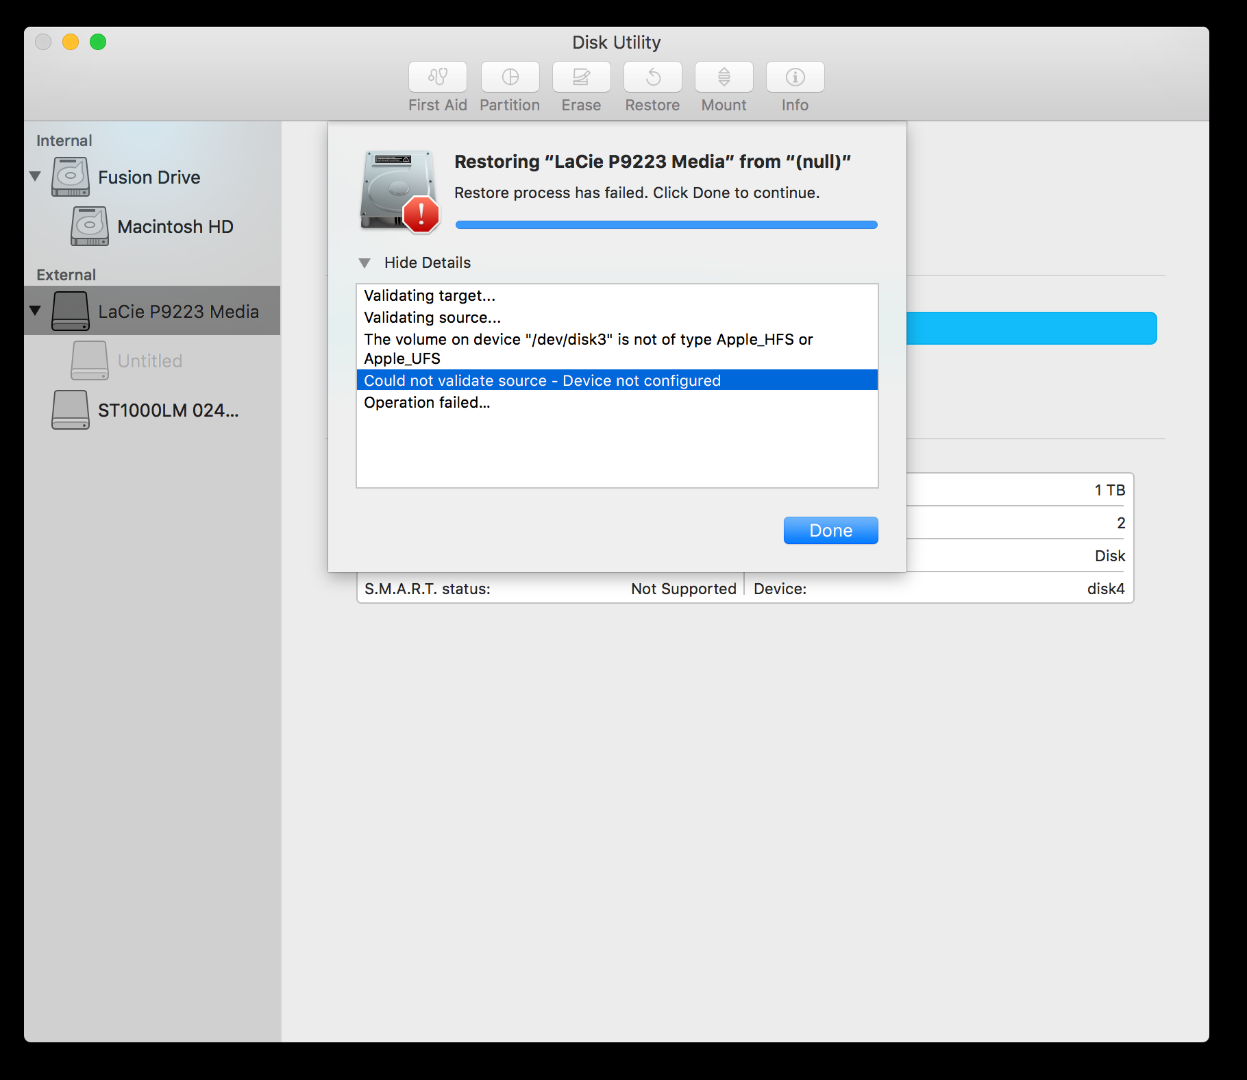 Disk Utility Could Not Validate Source